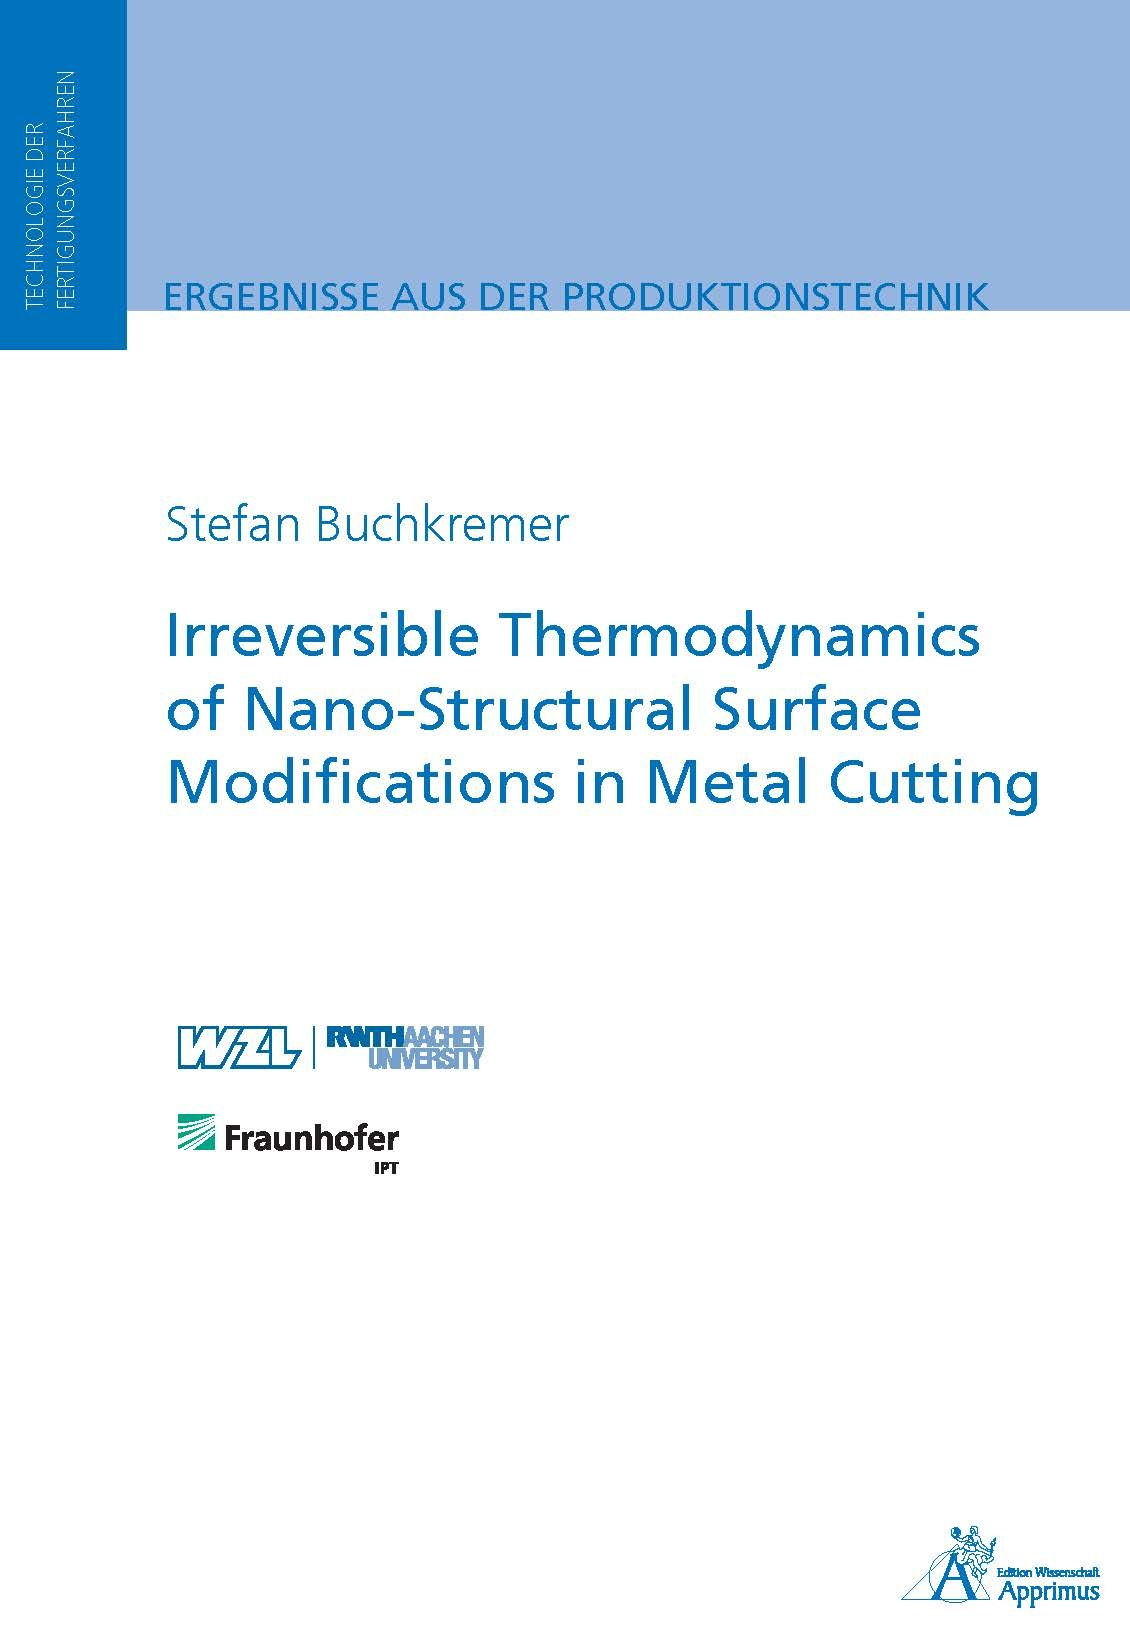 Irreversible Thermodynamics of Nano-Structural Surface Modifications in Metal Cutting